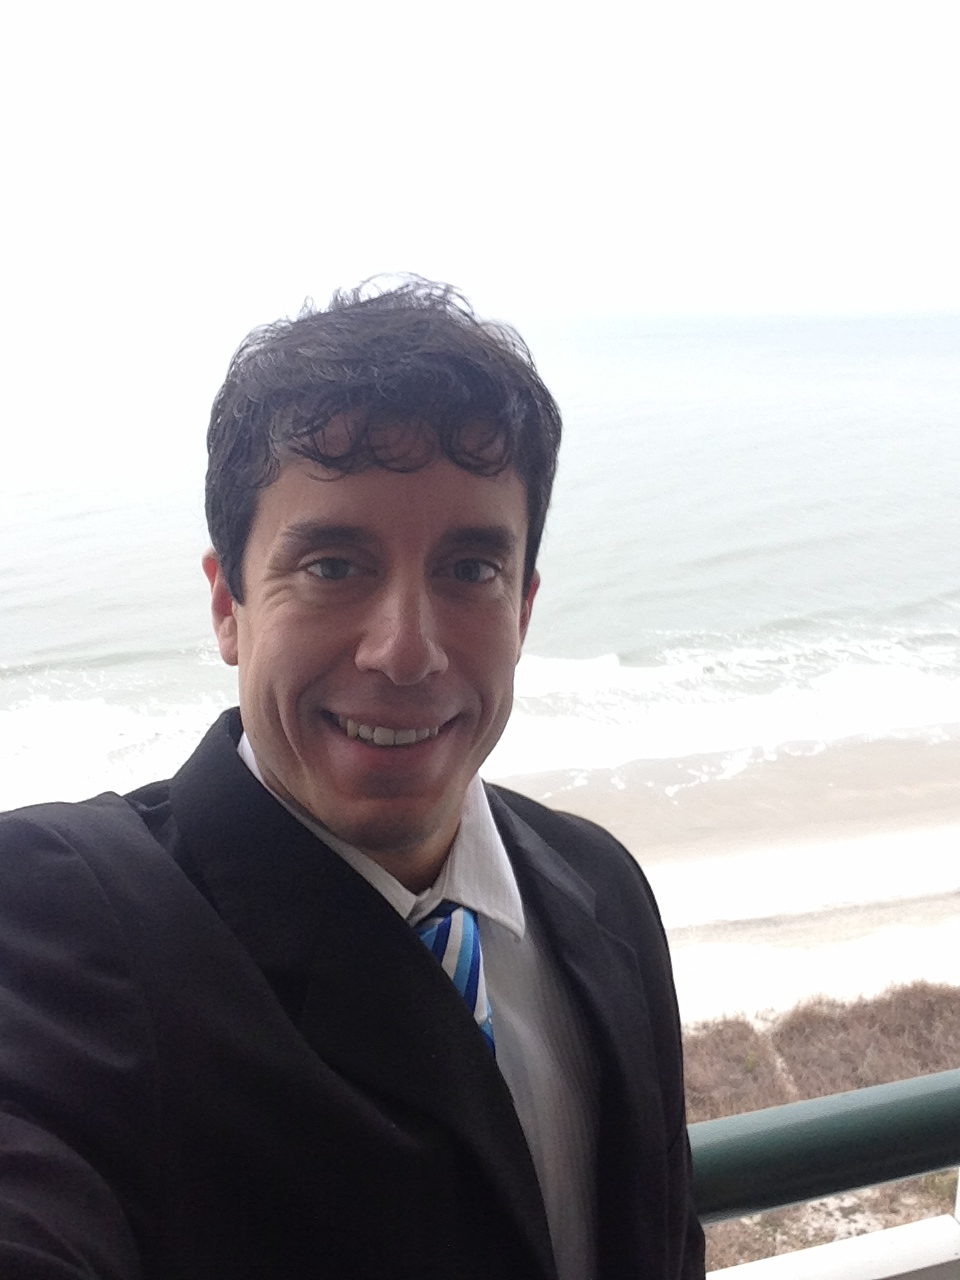 When I visited Coastal Carolina in March for my on-site interview I had a hotel room with a balcony that overlooked the ocean.